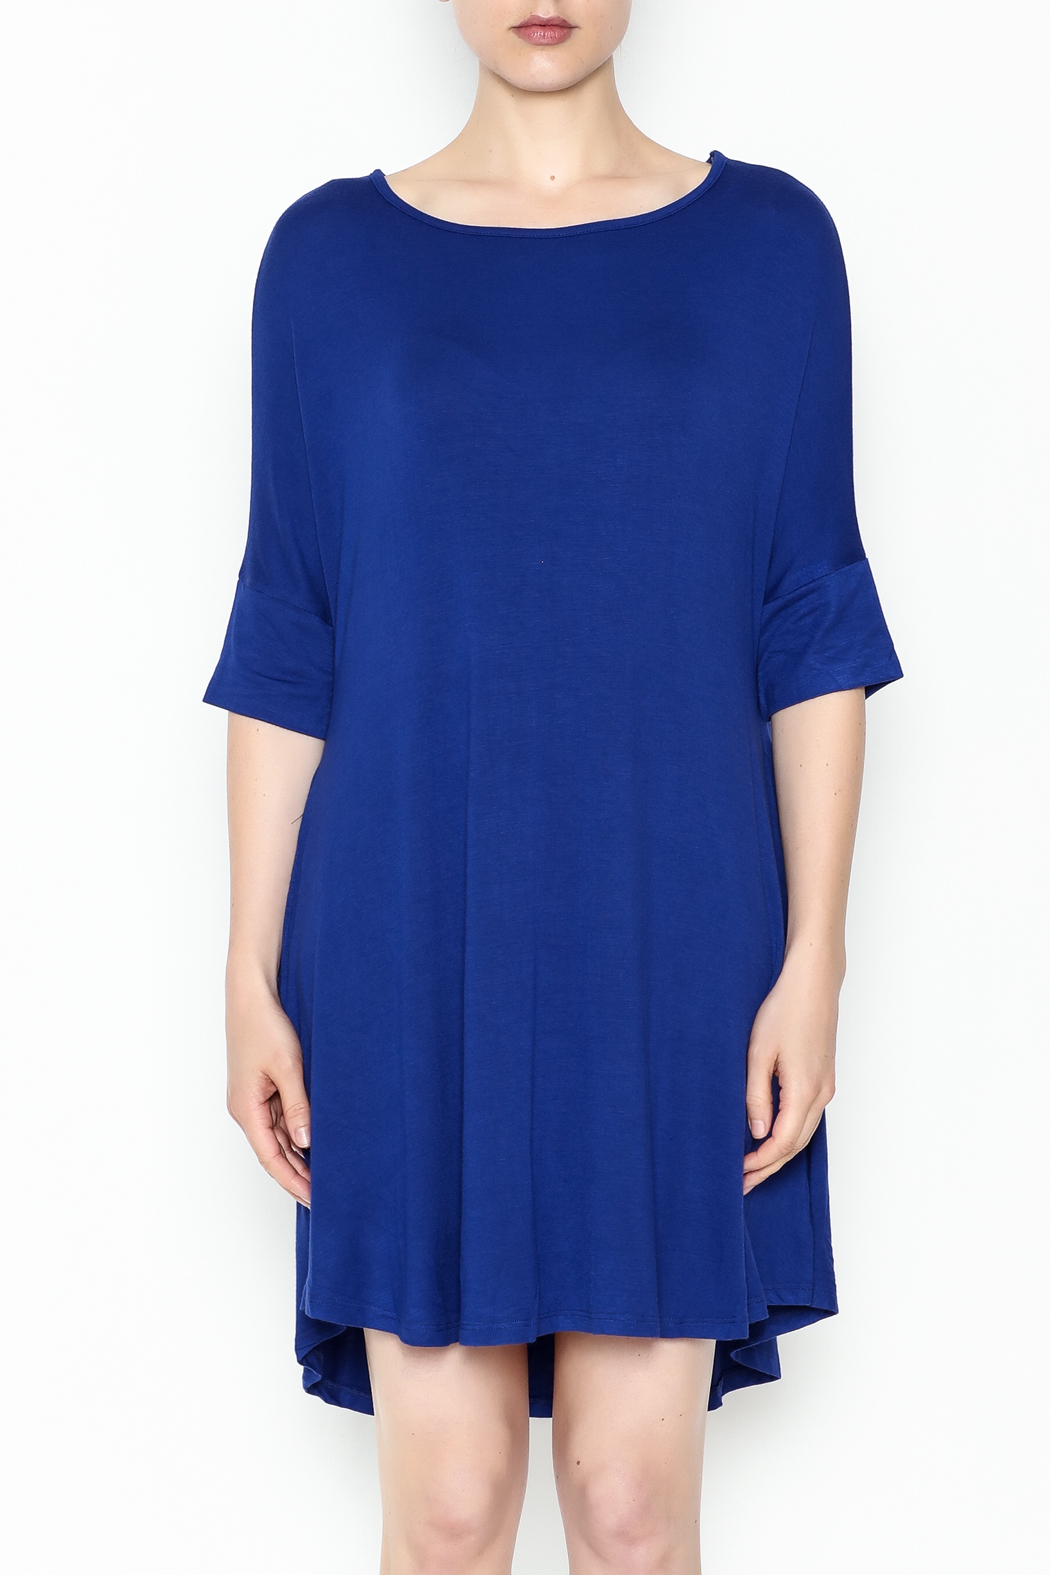 Umgee USA Royal Blue Tee Dress - Front Full Image